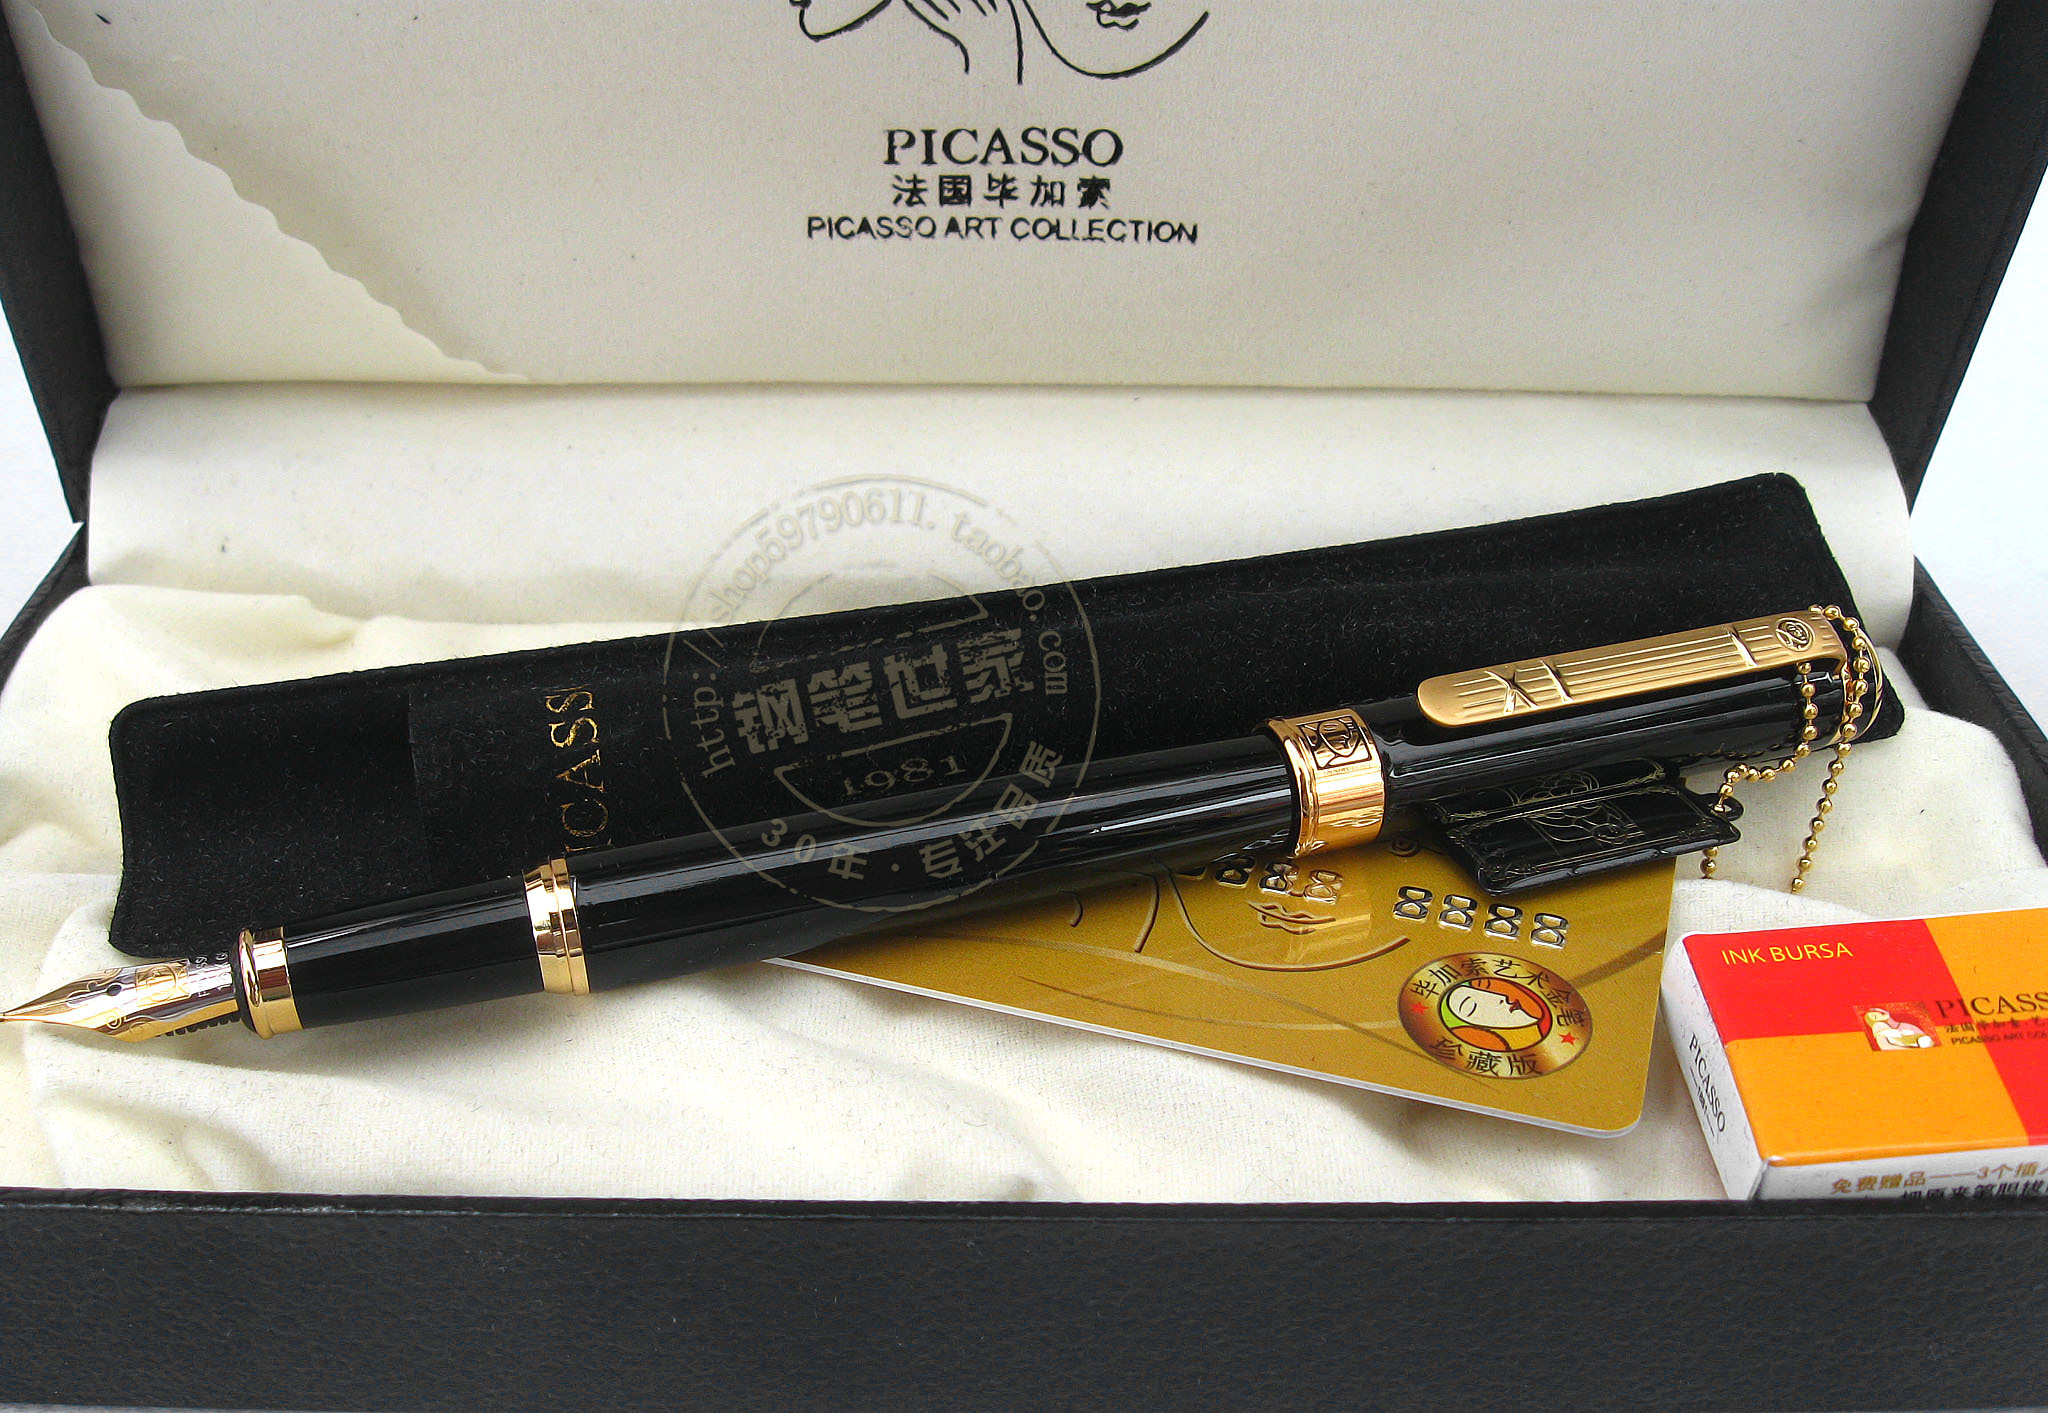 Picas gold ps clip iridic gold fountain pen big 902 28 nib 400  FREE shipping picasso picasso ps 909 black gold fountain of spatiotemporal pen ink pen picas pen free shipping